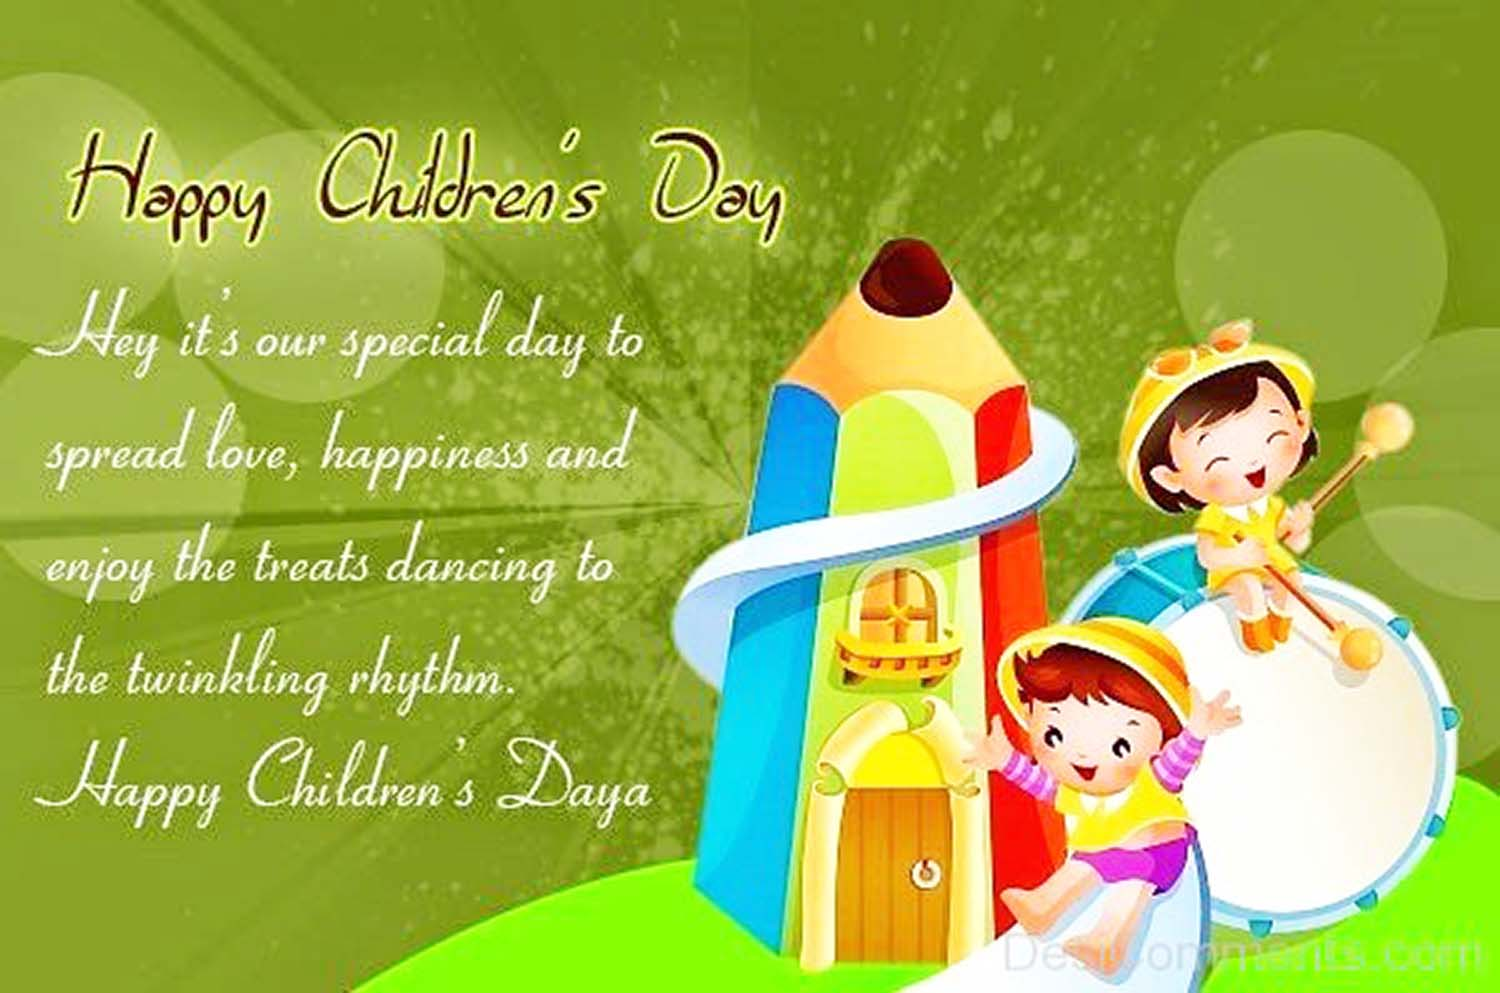 happy children's day rhymes